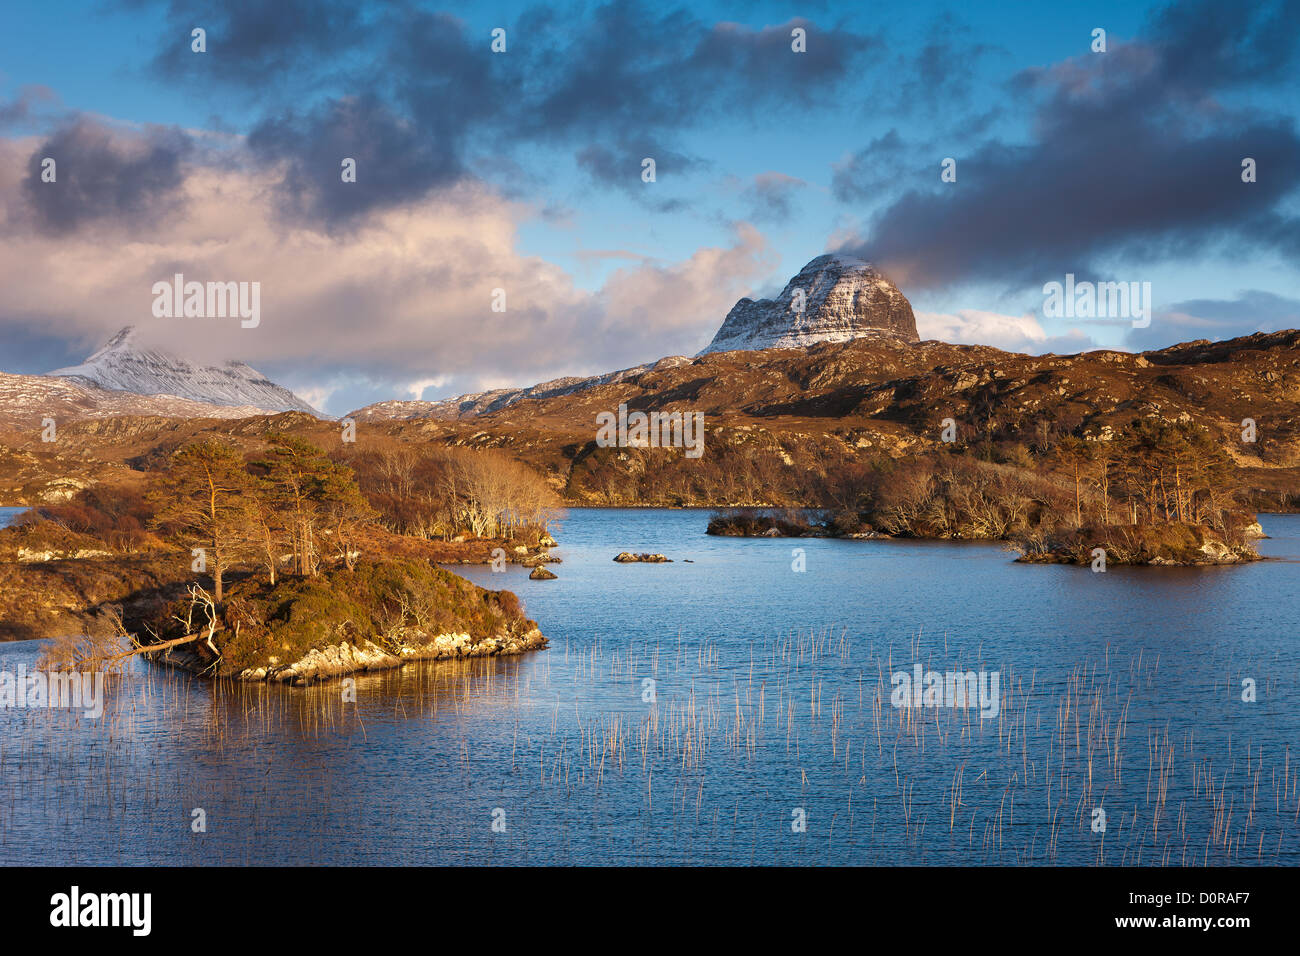 Loch Druim Suardalain with Mts Canisp & Suilven dusted in snow, Sutherland, Scotland Stock Photo